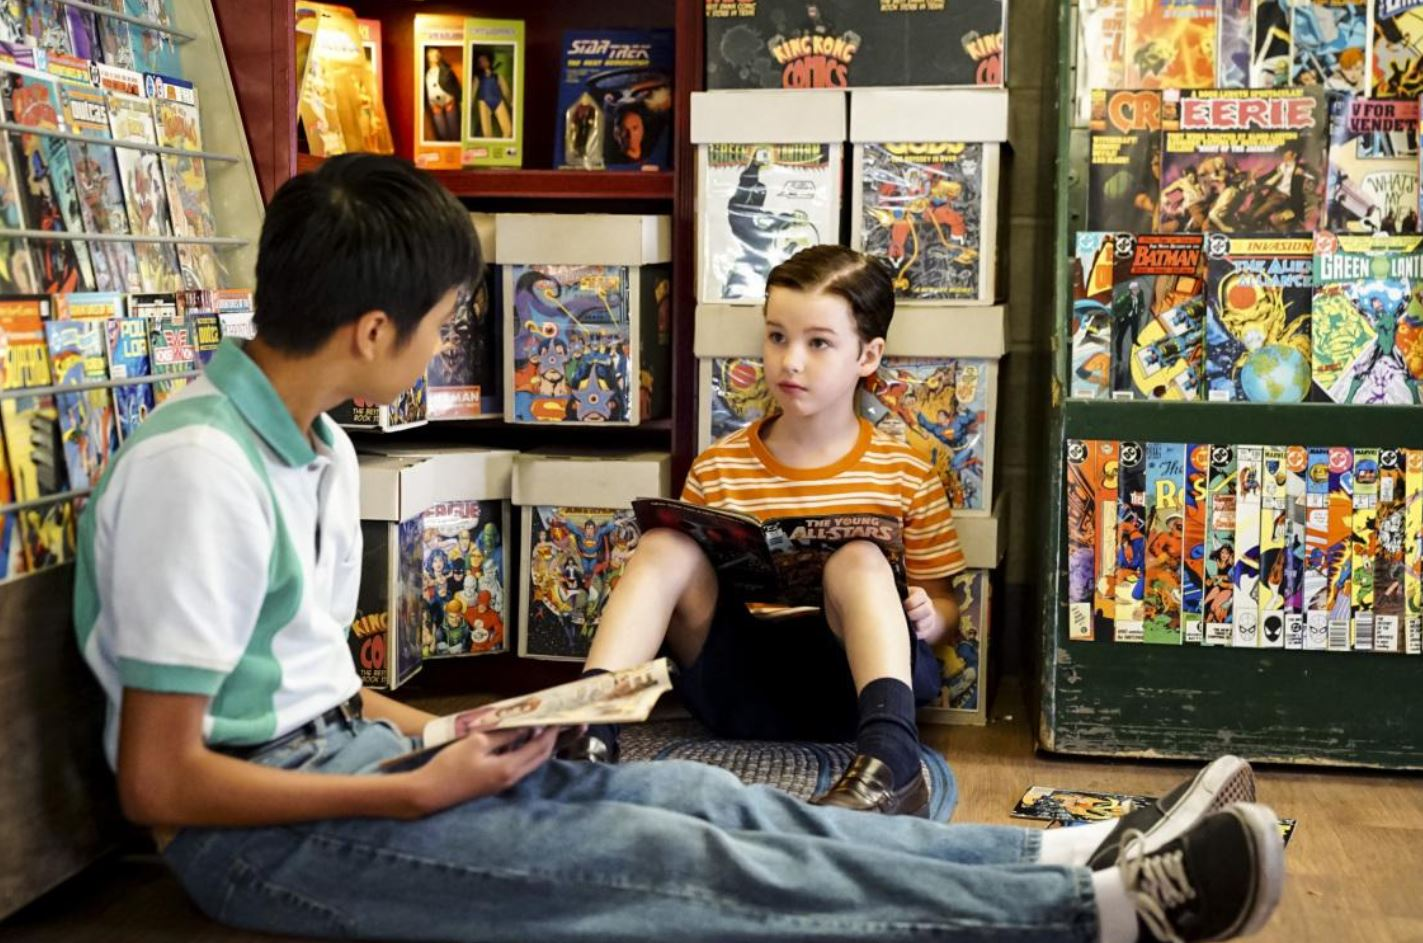 Ryan Phuong and Iain Armitage in Young Sheldon (2017)